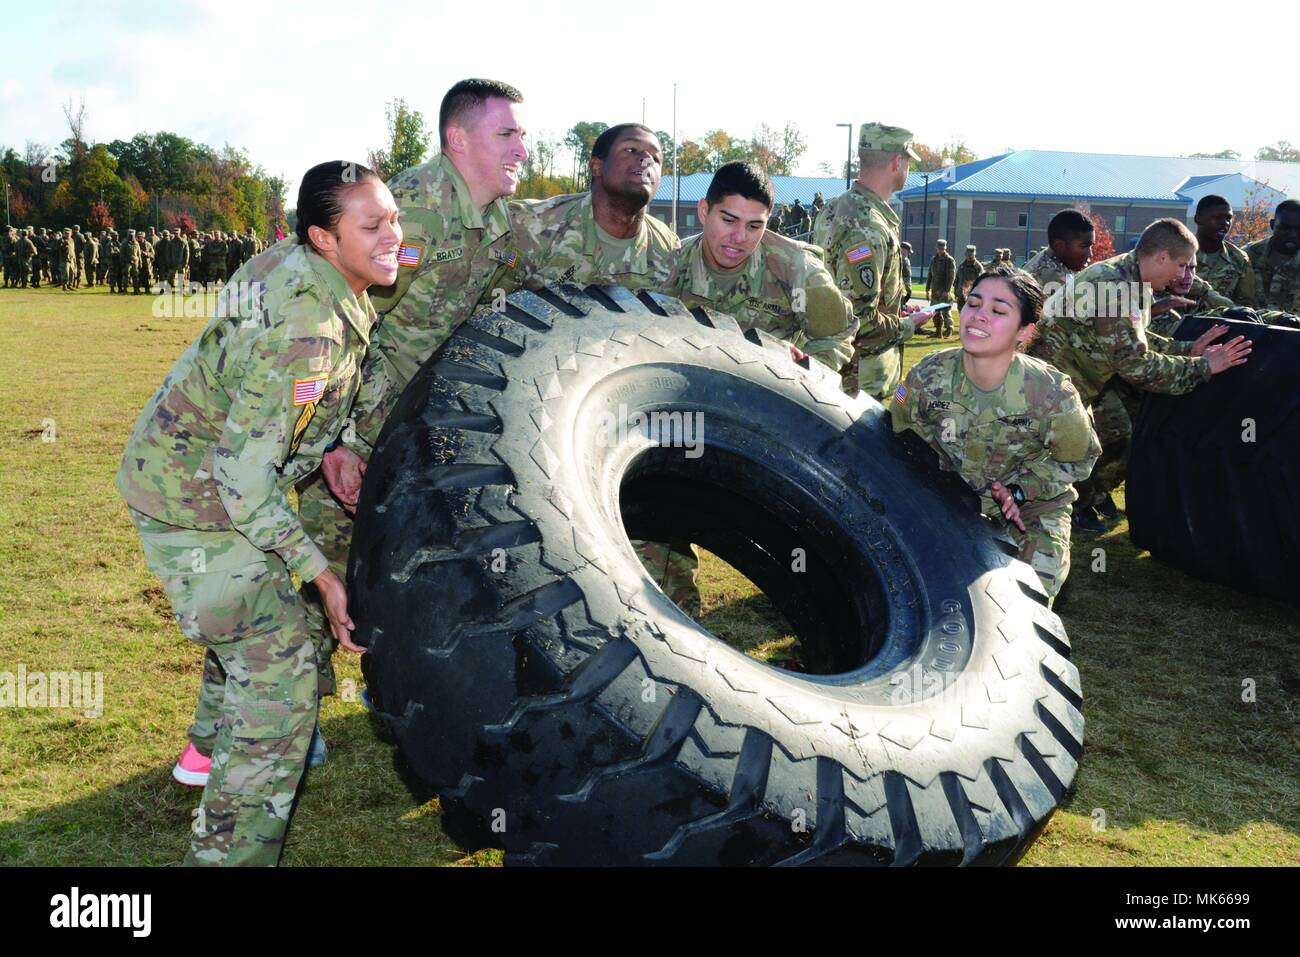 Soldiers from Bravo Company, 16th Ordnance Battalion, tackle a physically demanding tire flip obstacle that was part of a Power Belt Challenge competition Nov. 10 on the Ordnance Campus. The morning long event also included various races with water jugs, ammo cans and medical stetchers loaded with 150-pound first aid dummies. The troops also threw dummy grenades, disassembled and reassembled weapons and competed in a tug-of-war faceoff. - Stock Image